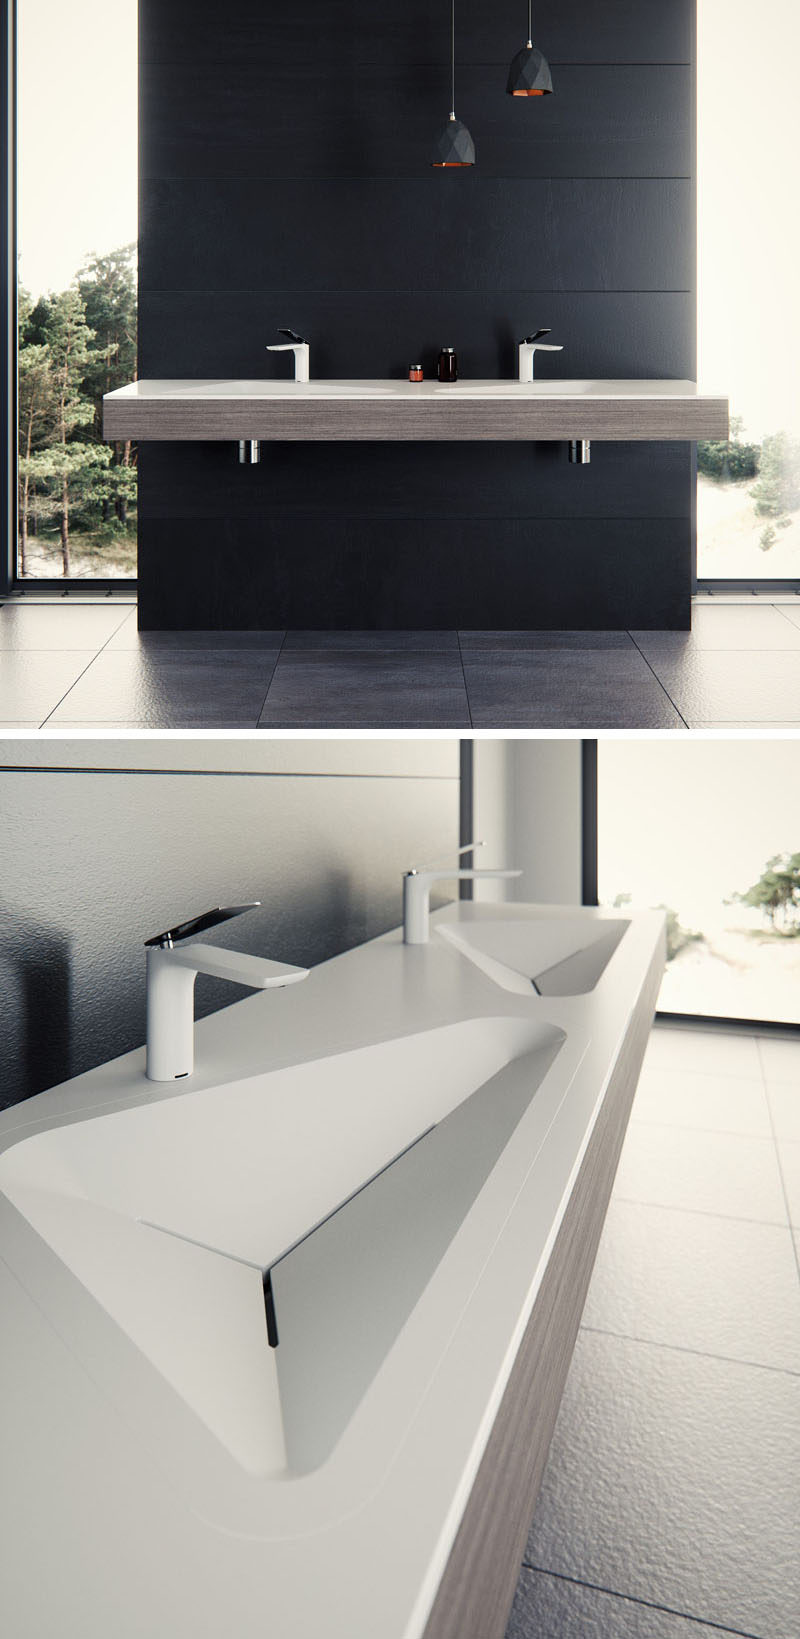 Le Projet have designed a modern bathroom sink that has contemporary crisp lines and geometric shapes. #BathroomDesign #BathroomSink #ModernBathroom